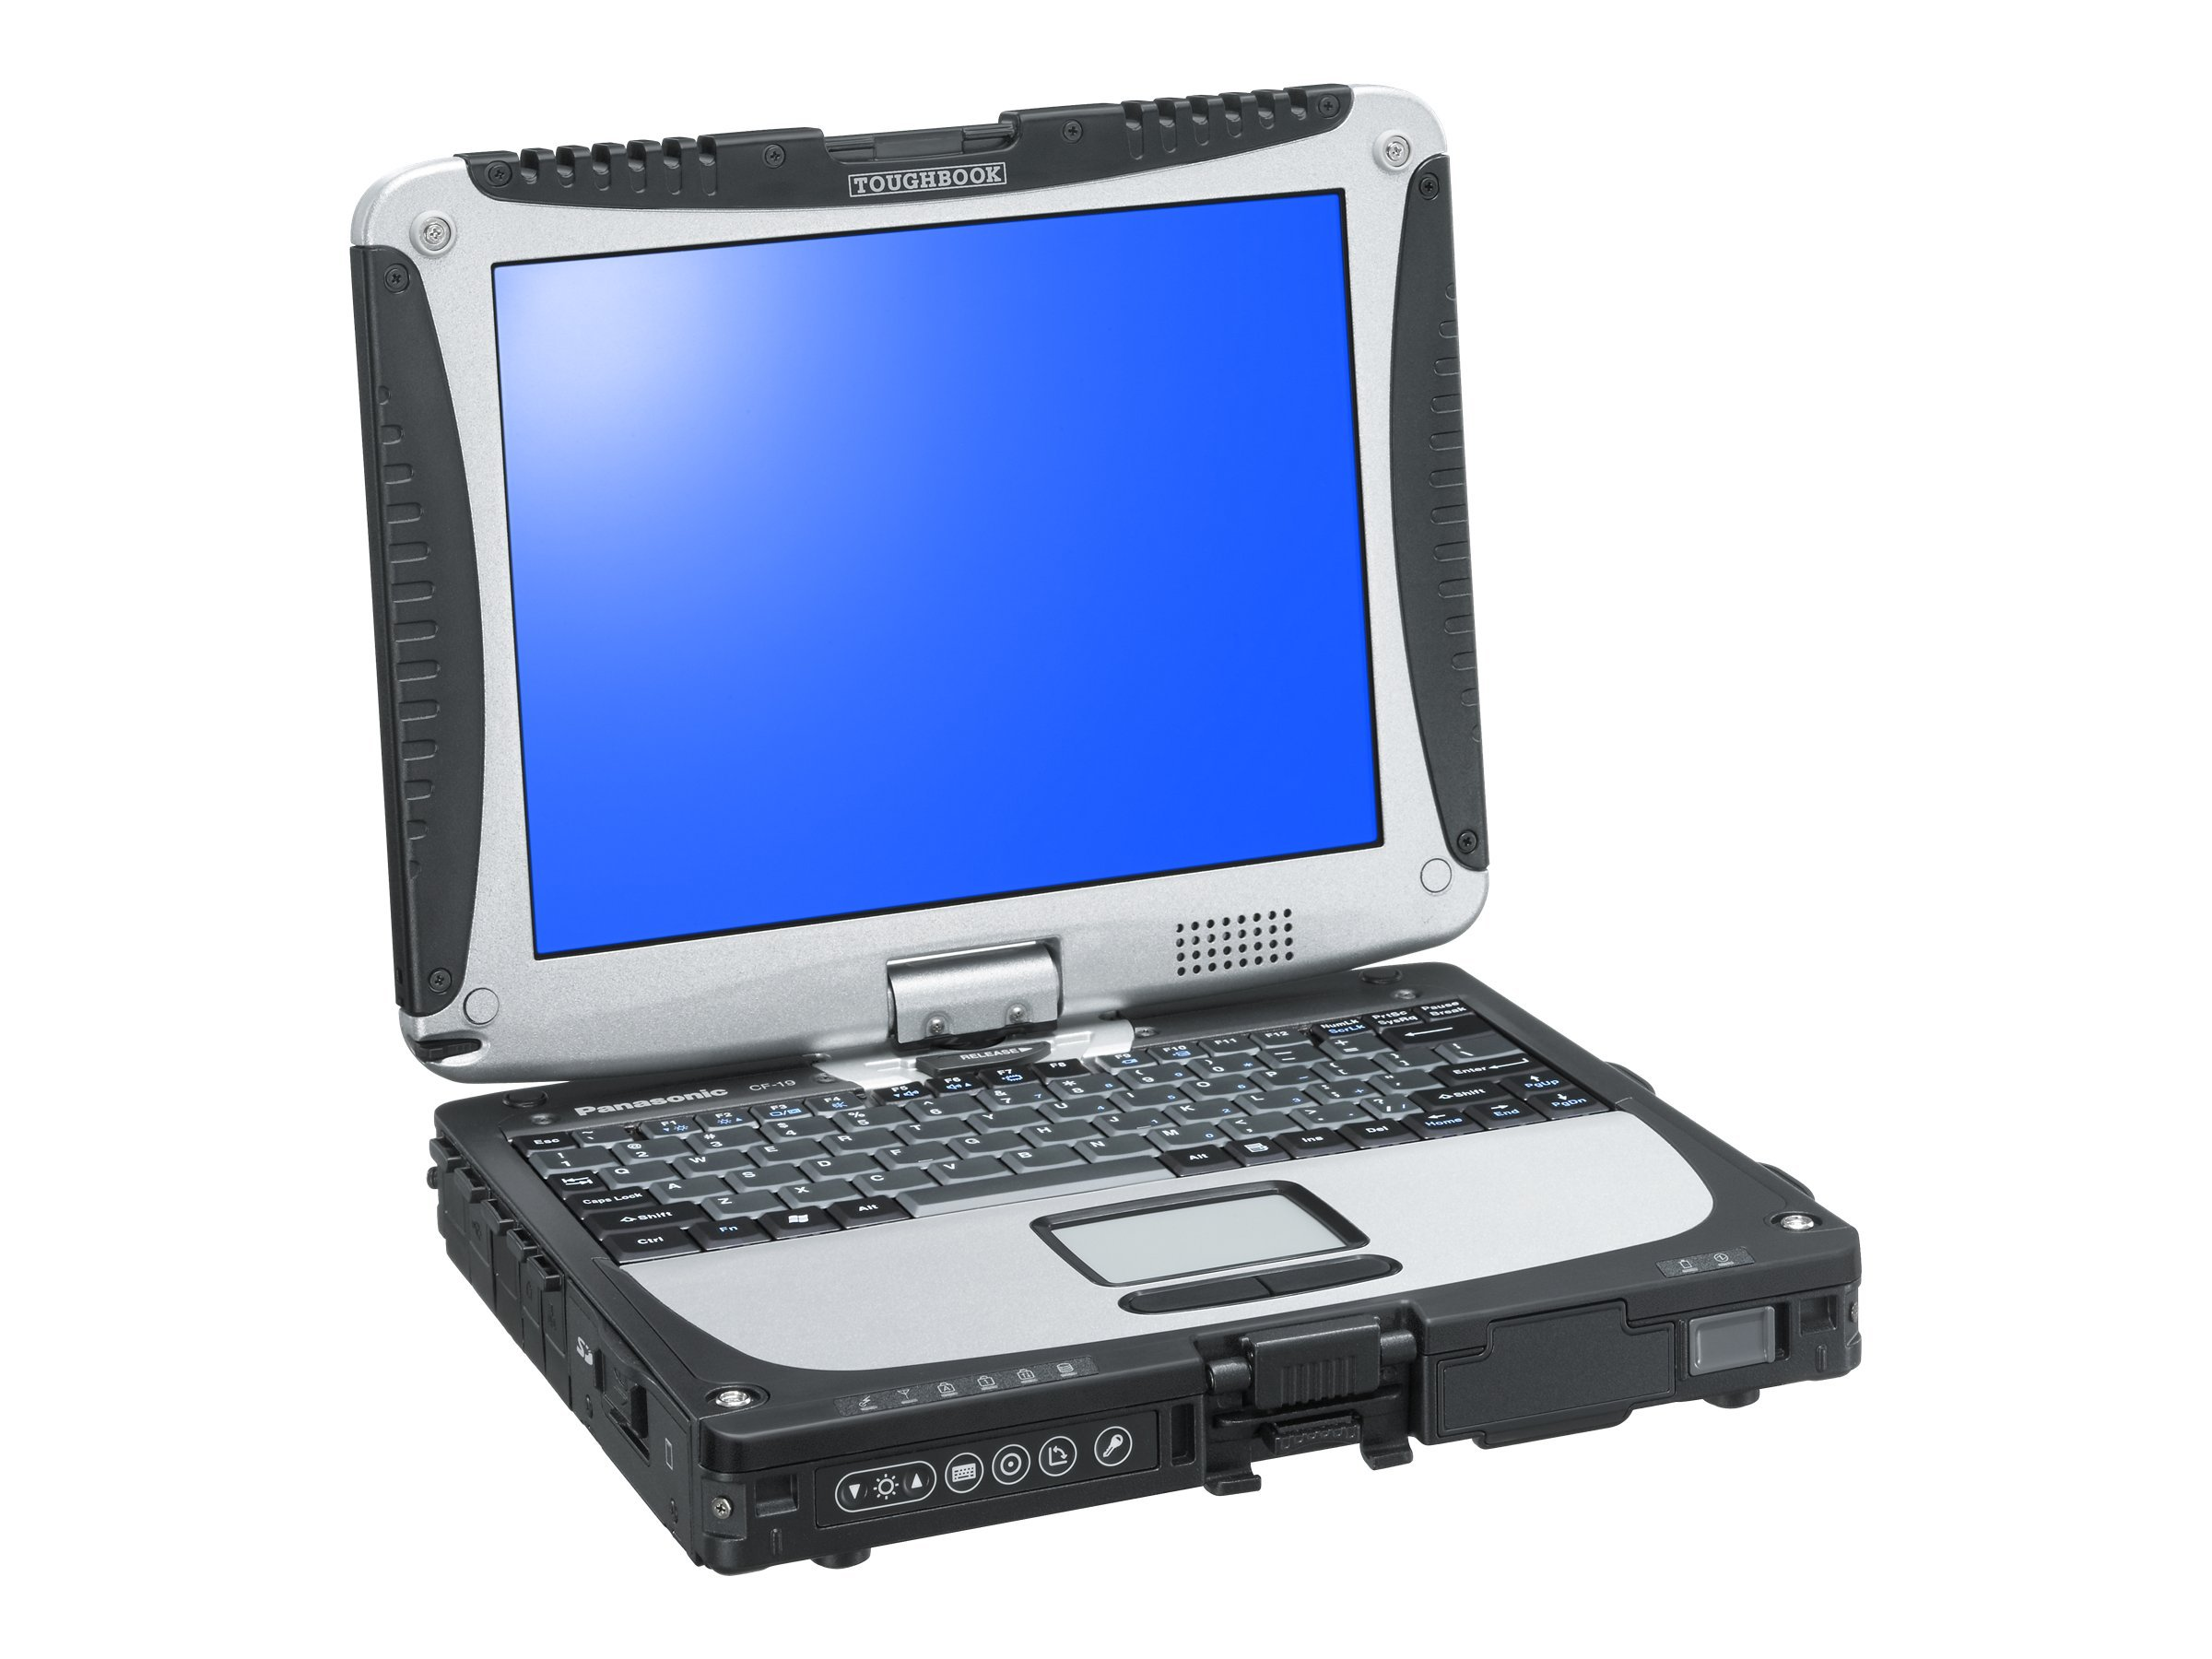 Panasonic Toughbook 19 Core i5-3610ME 2.7GHz 10.1 MT, CF-19ZE002DM